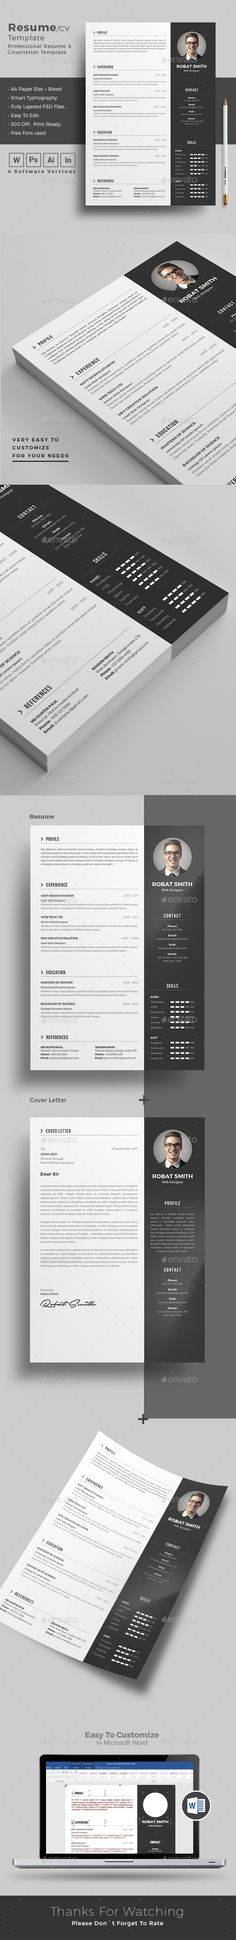 Clean Resume Word Indesign Template Resume Pinterest Resume - resume for word